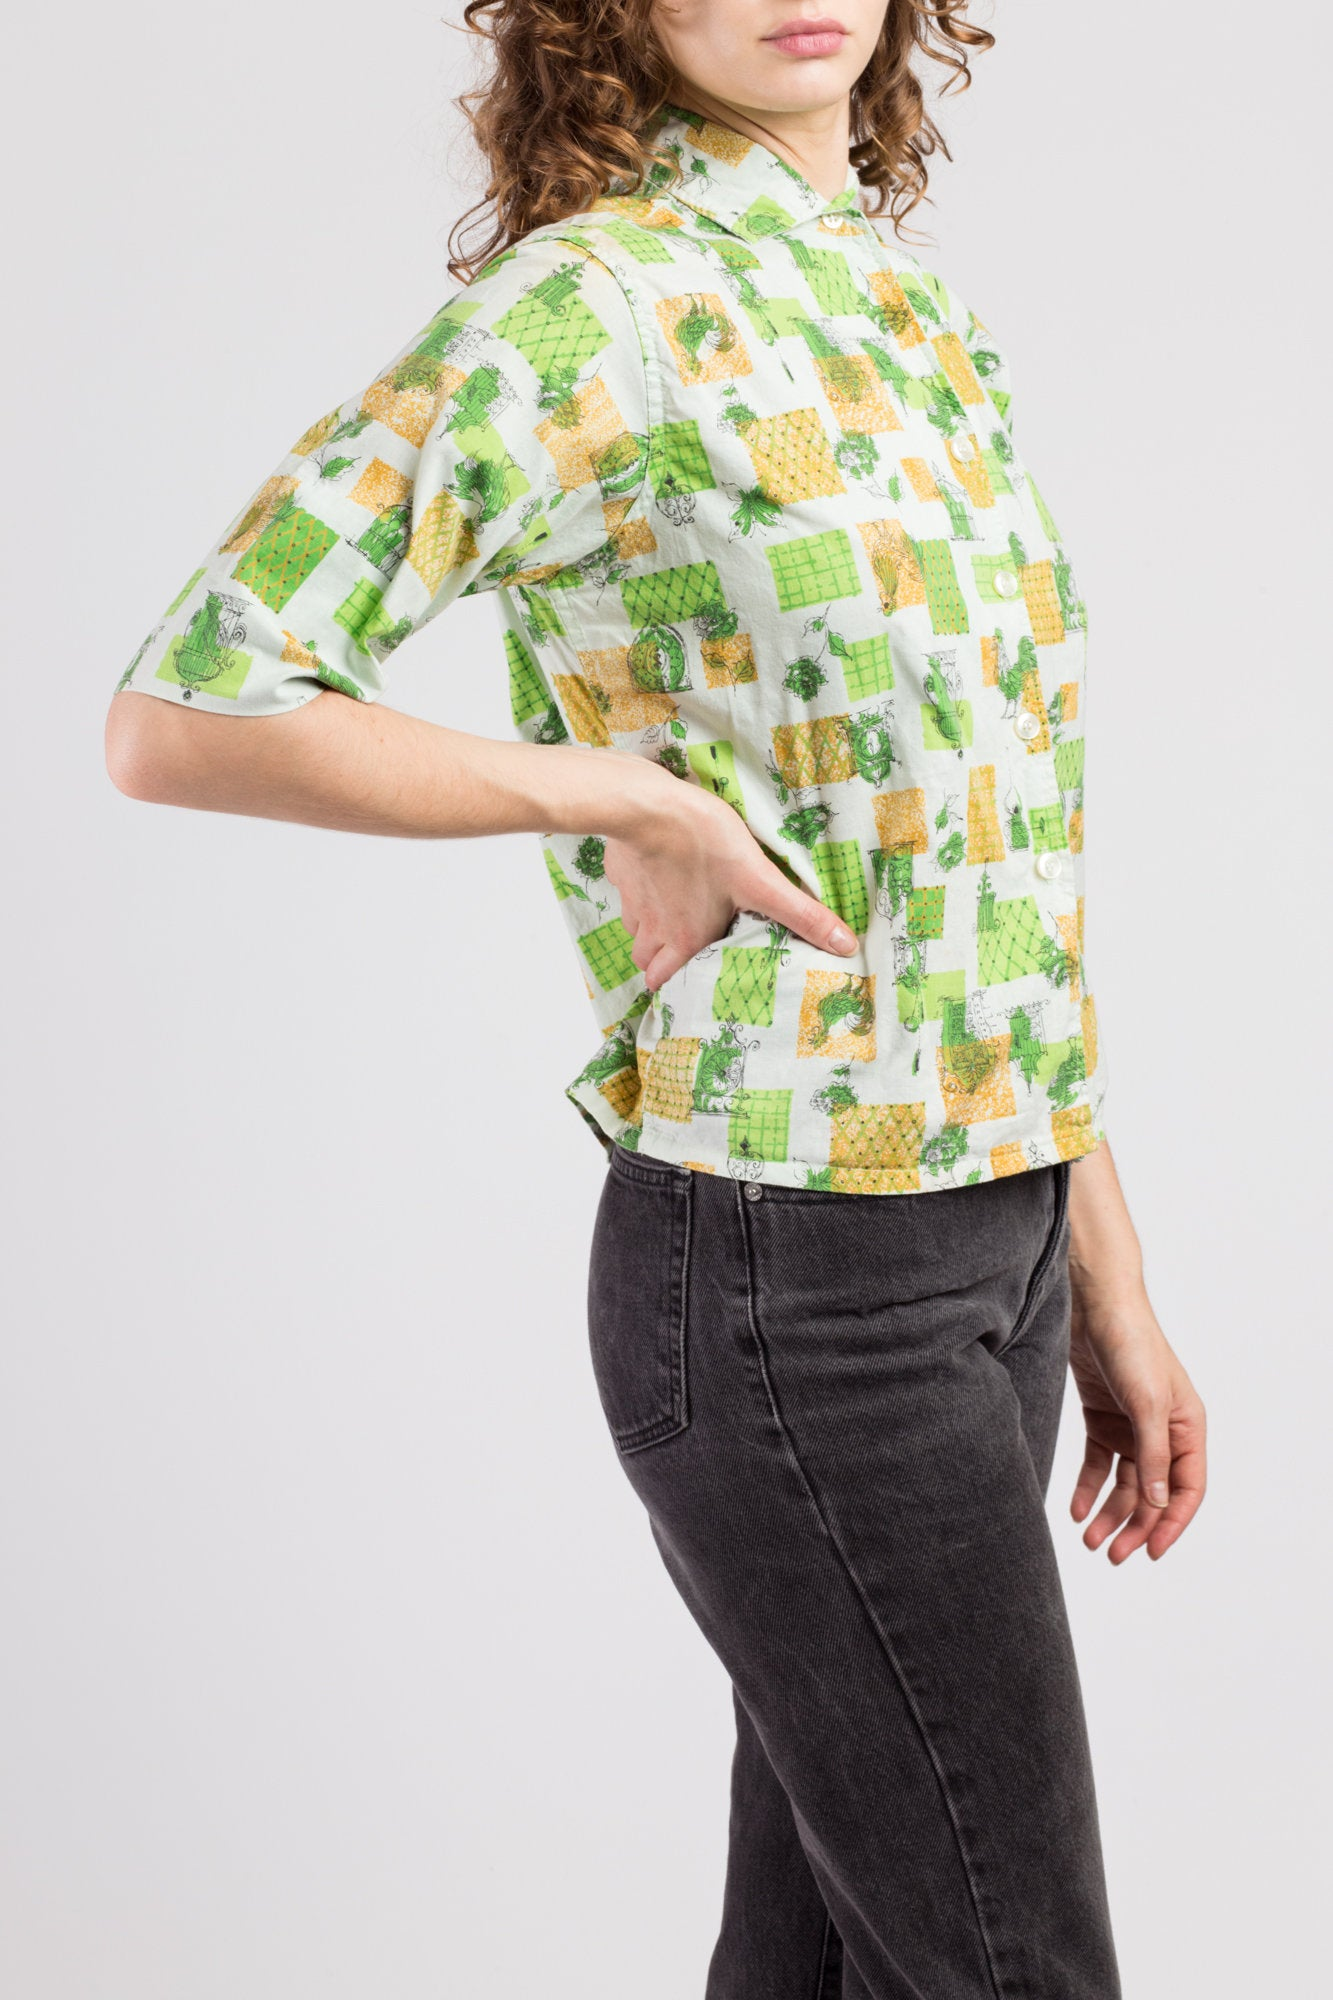 60s Novelty Print Collared Blouse - Small